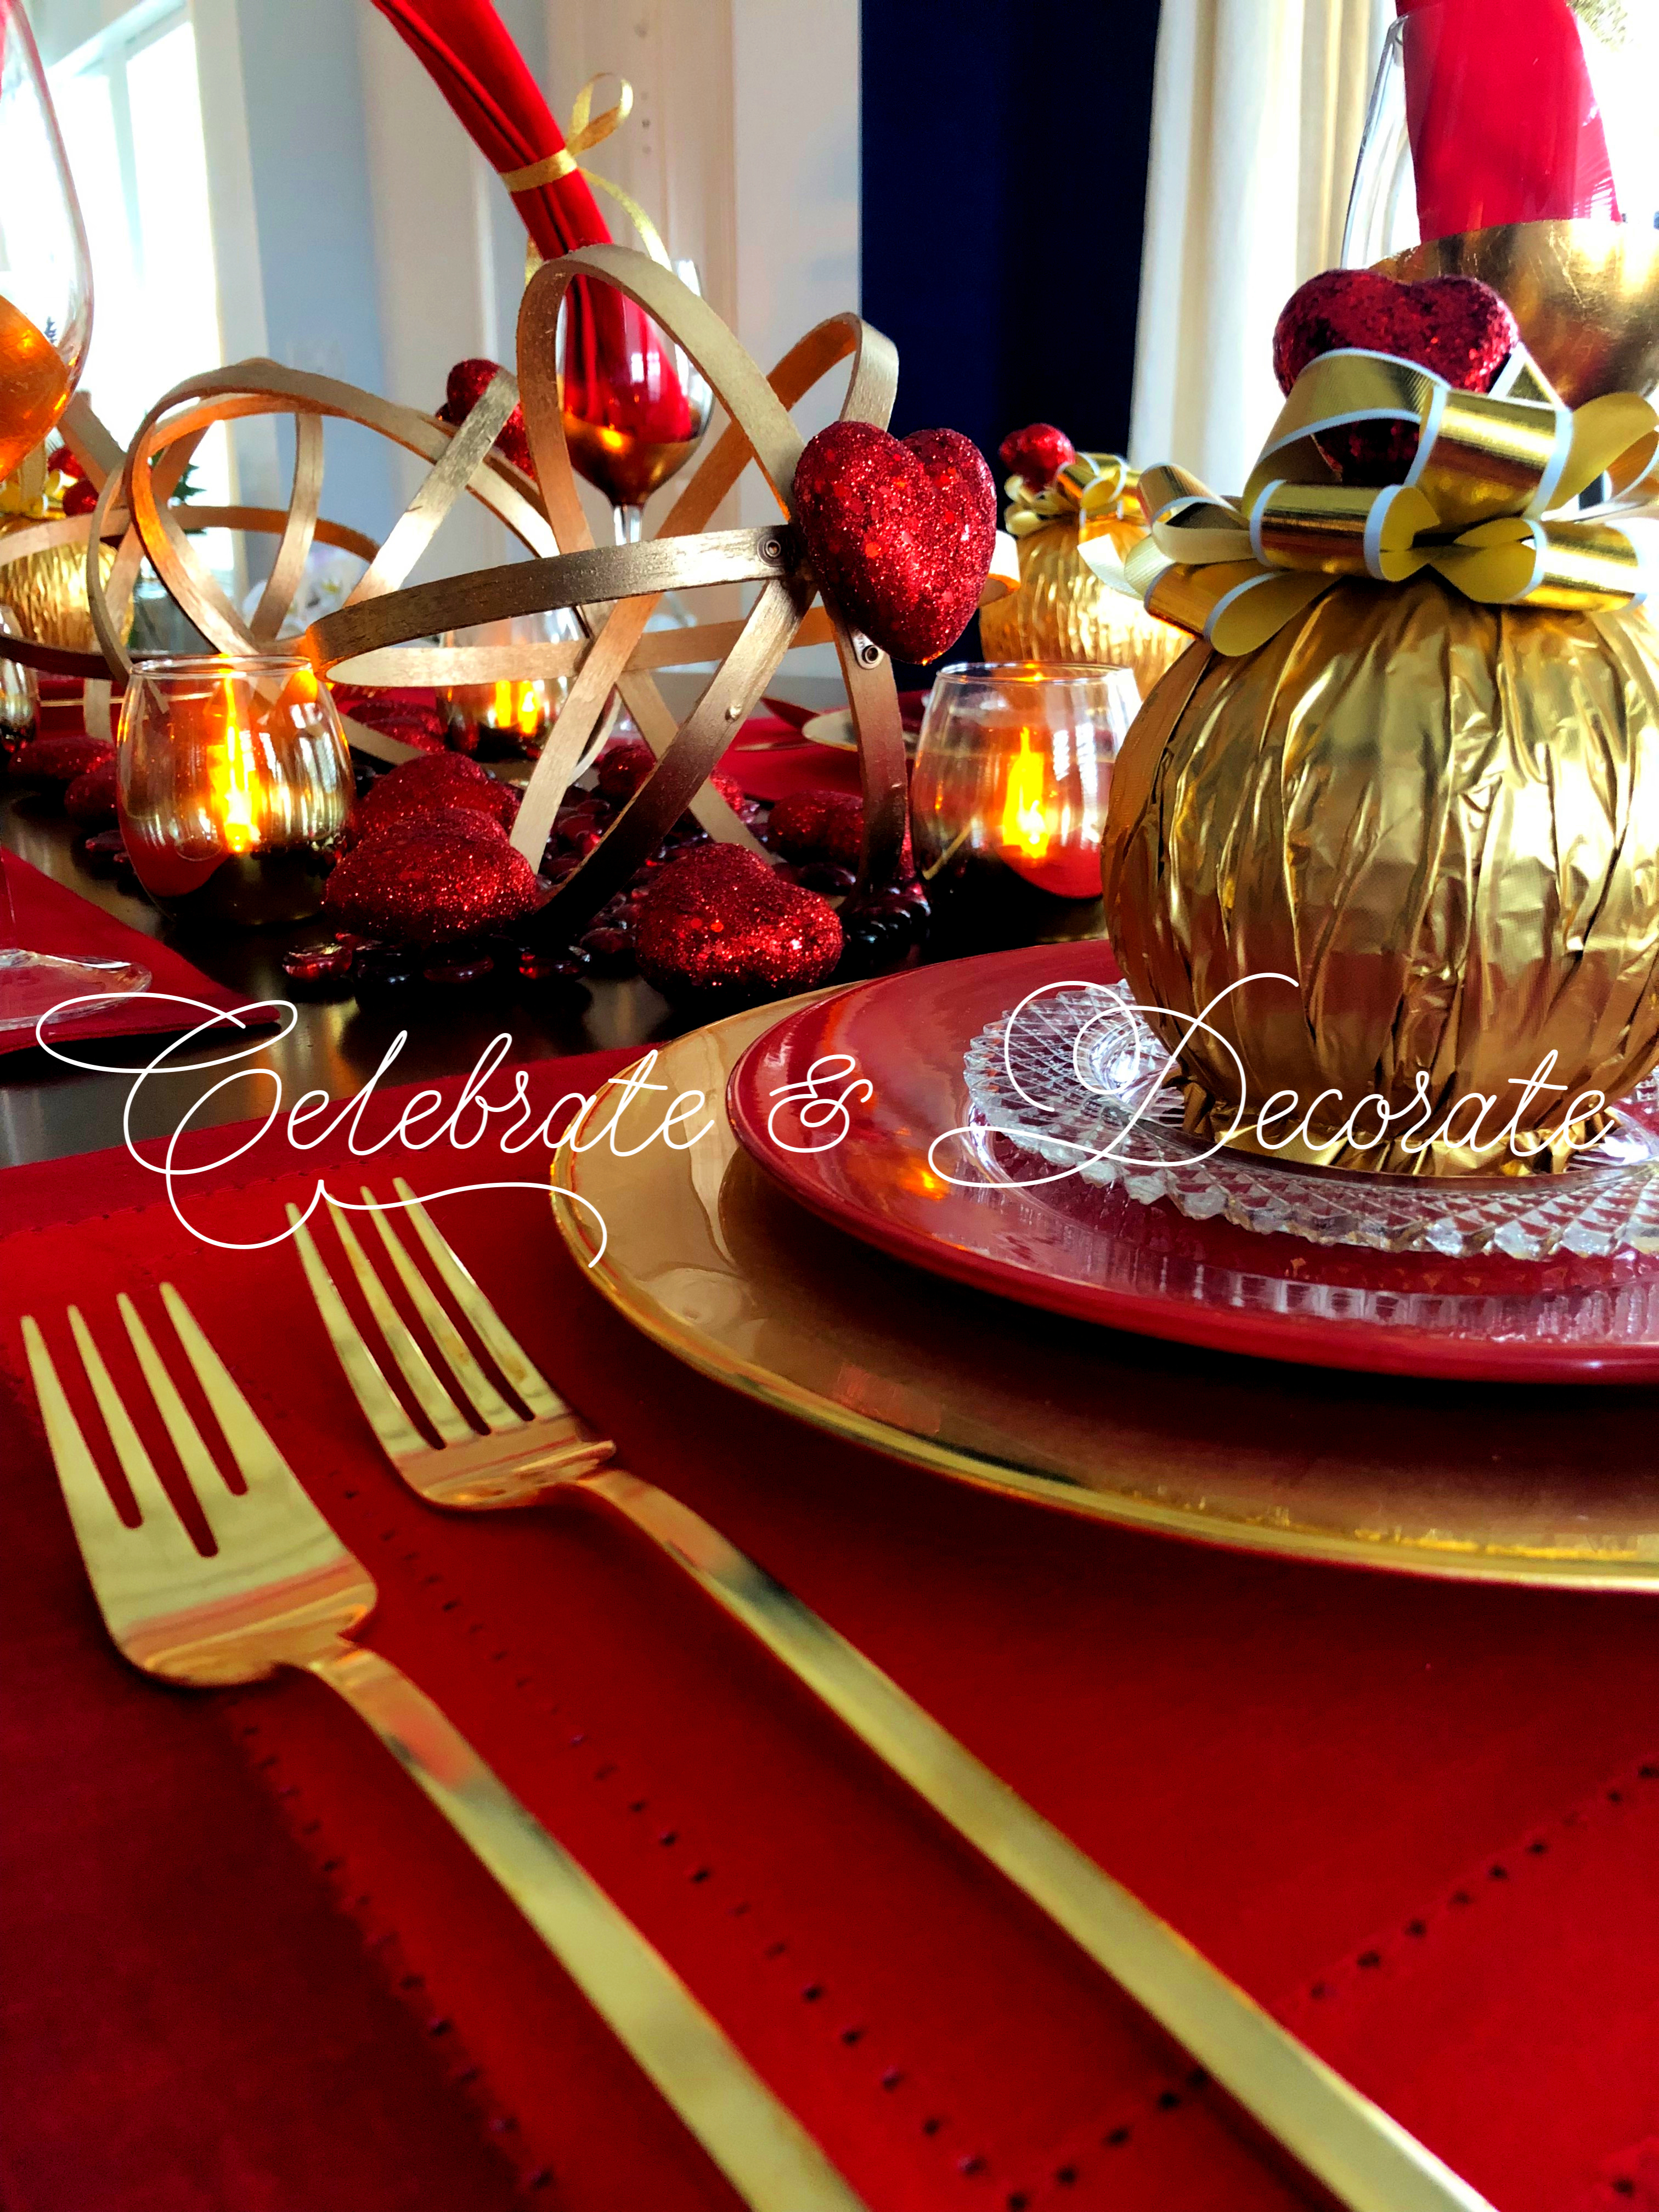 Astonishing Valentines Table In Red And Gold Celebrate Decorate Download Free Architecture Designs Grimeyleaguecom